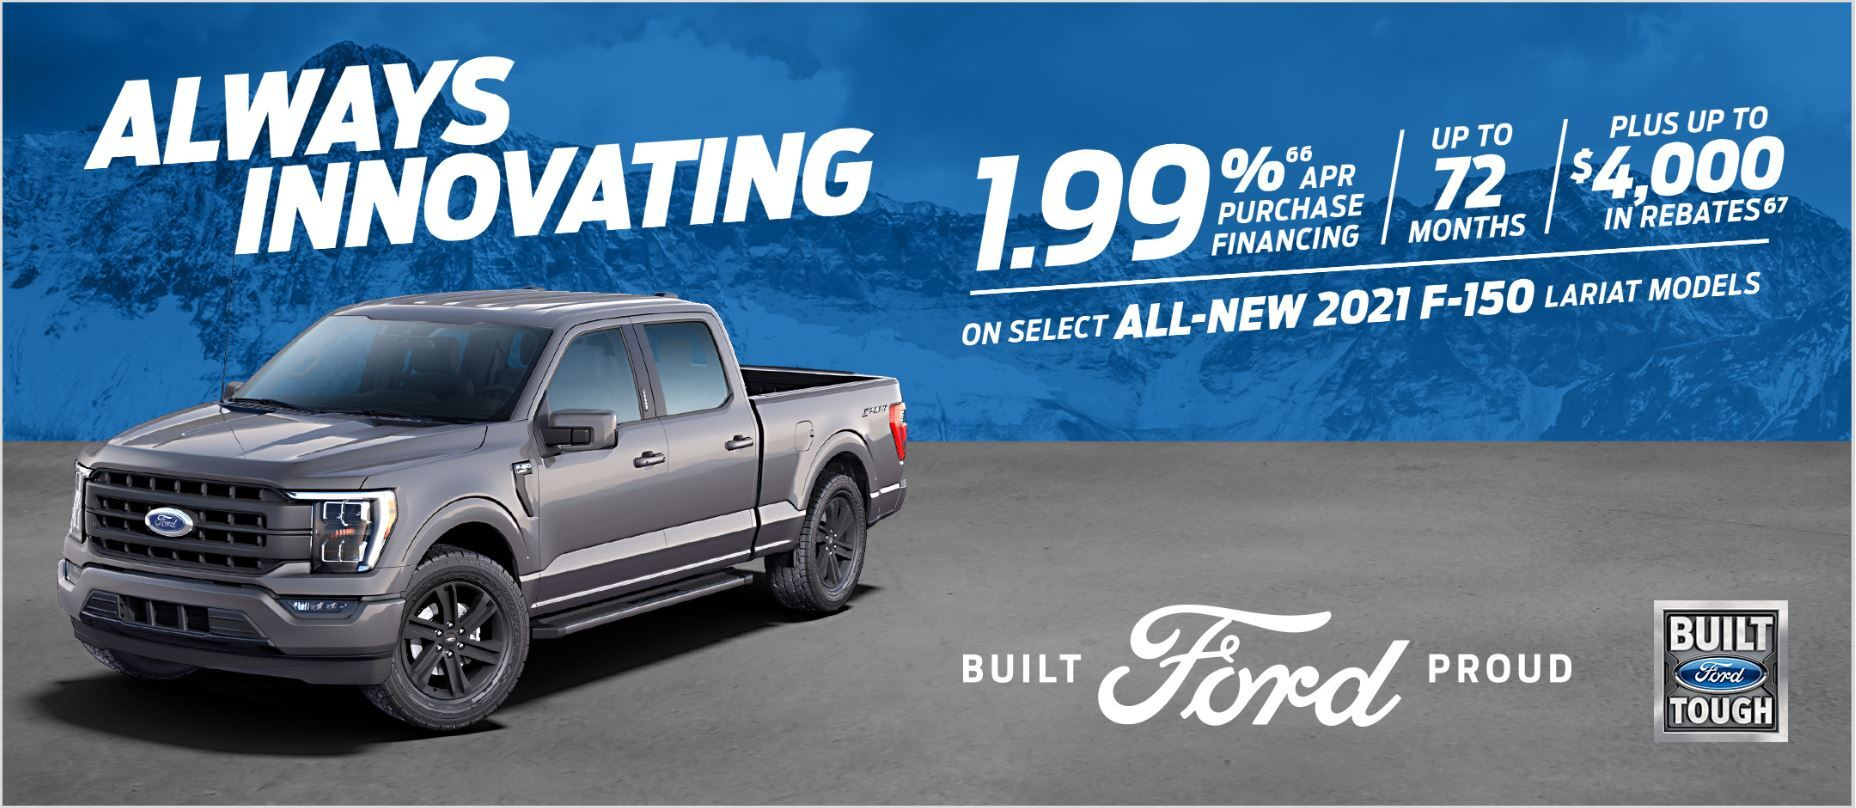 Great Deals on the ALL NEW 2021 F-150